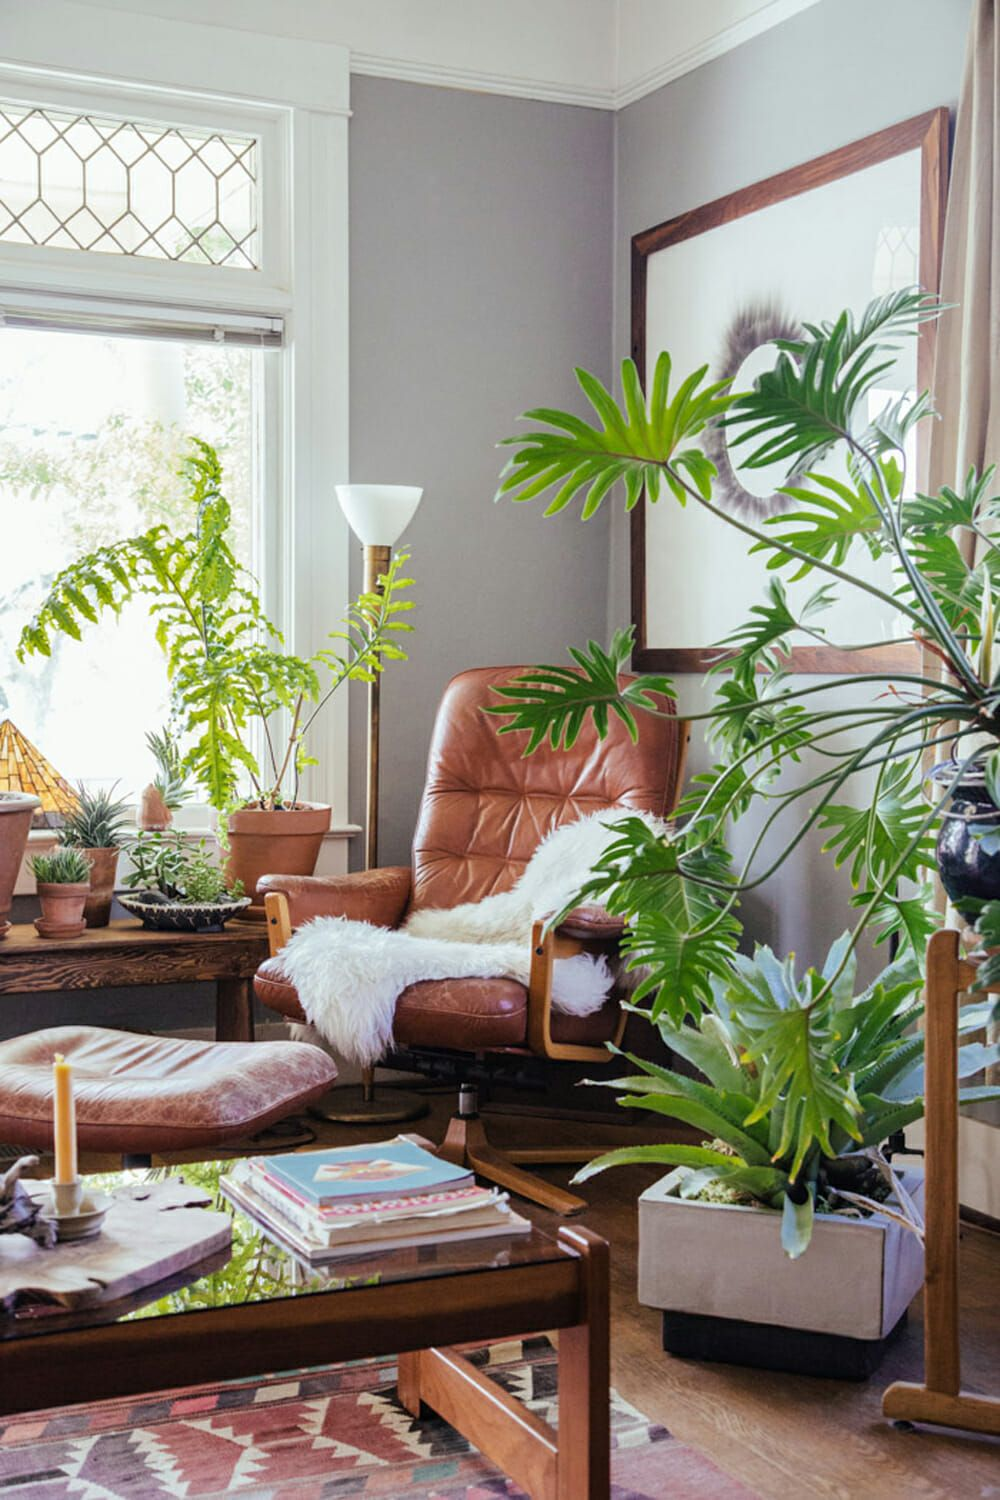 Decorating With Plants 11 Living Room Plants Apartment Pl